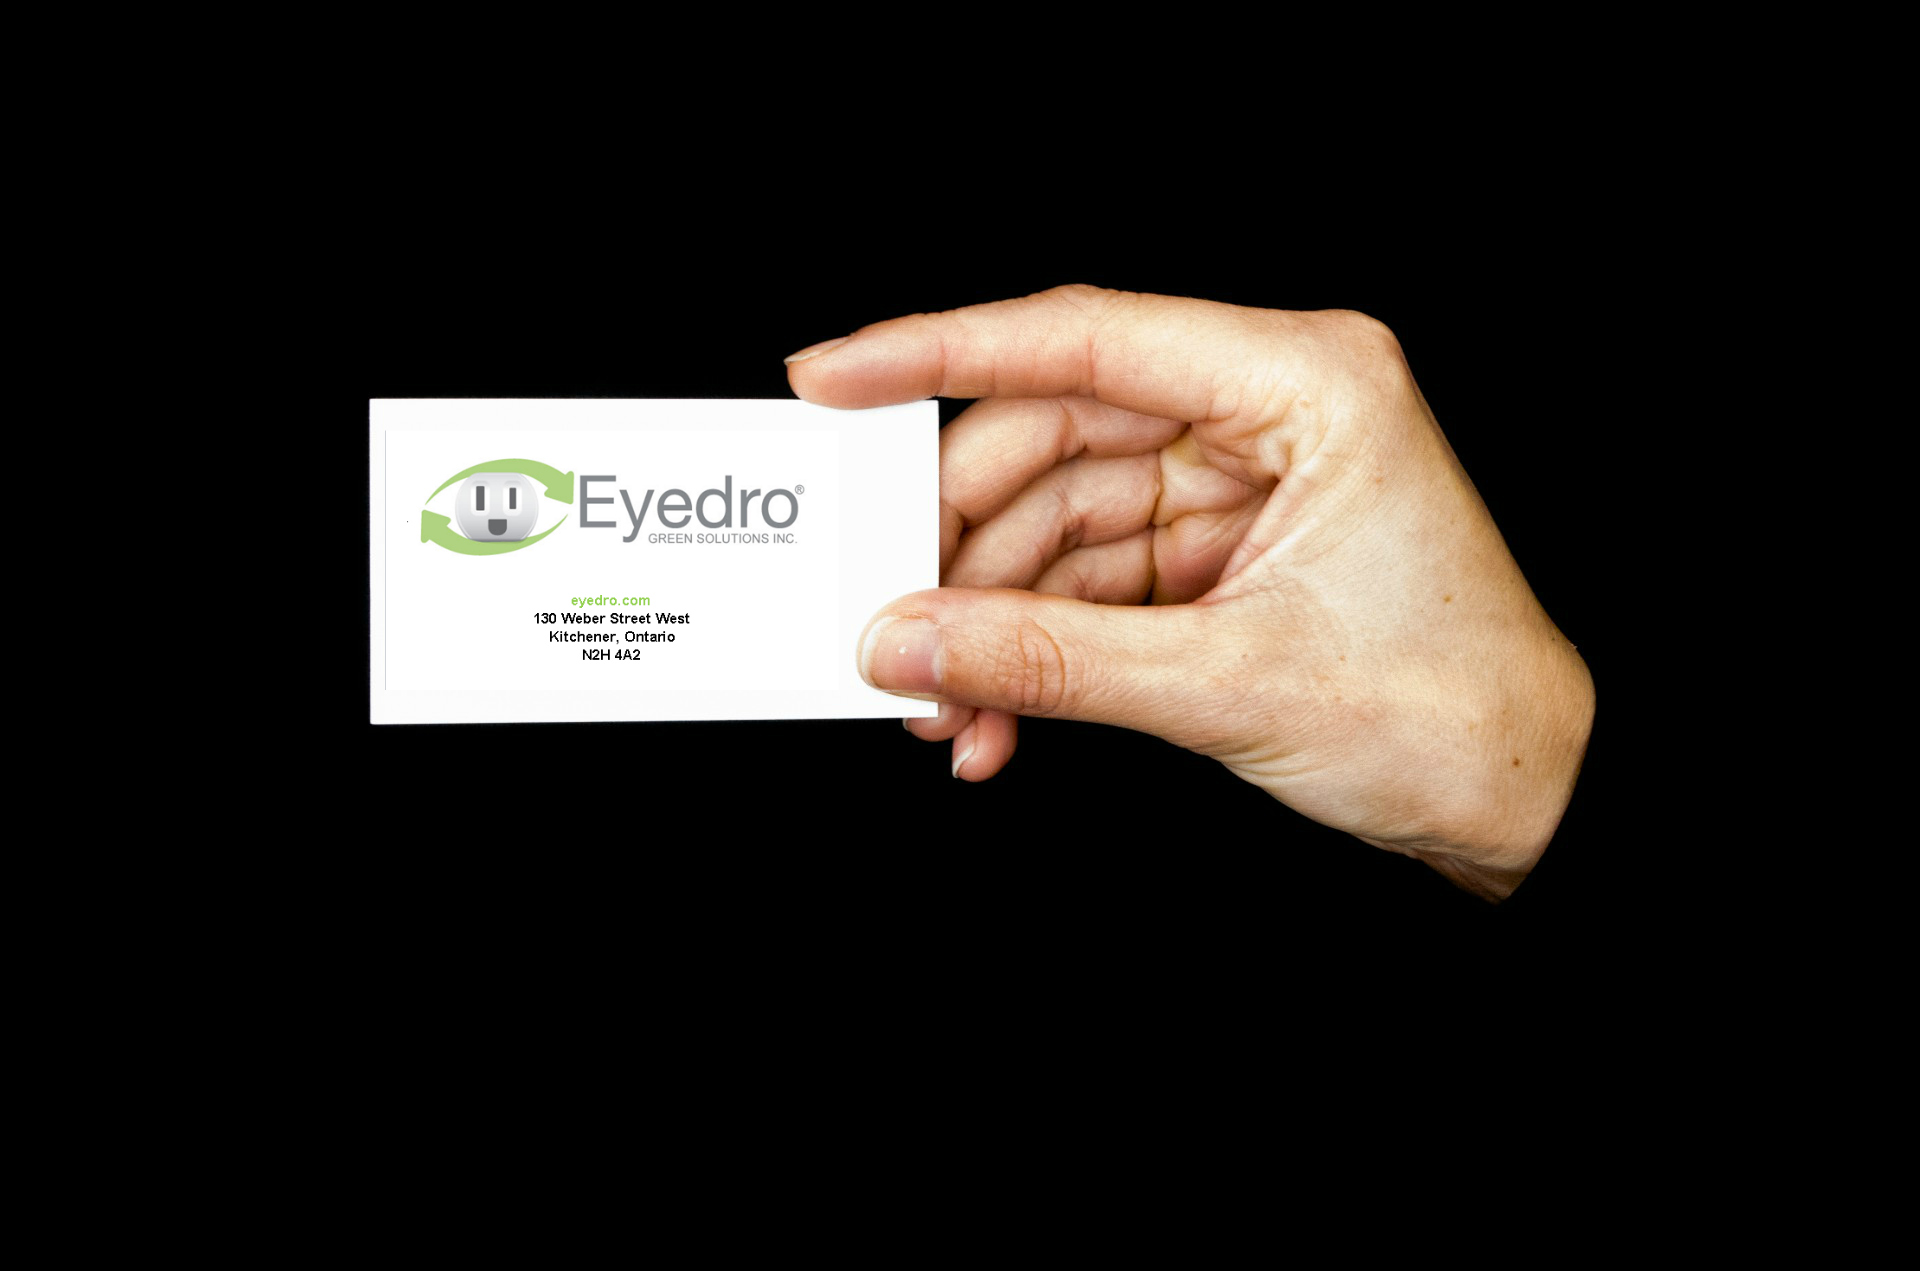 New MyEyedro Feature: Custom Business Card - Eyedro